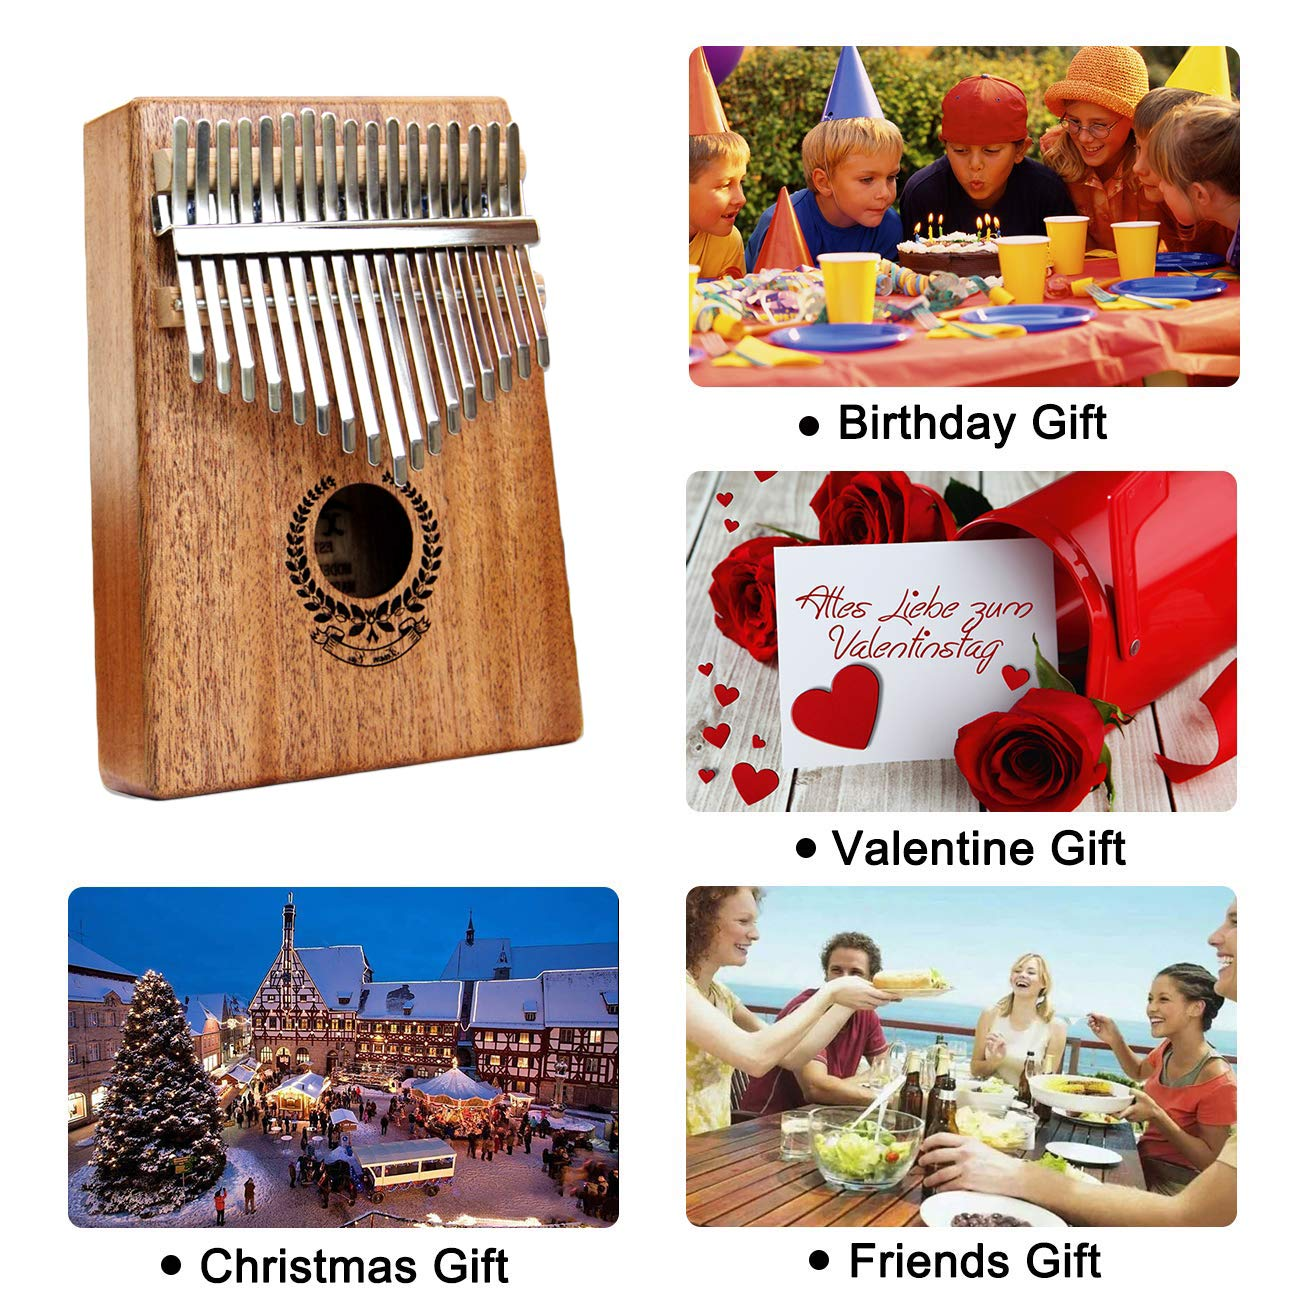 Kalimba 17 Keys Thumb Piano builts-in EVA high-performance protective box, tuning hammer and study instruction best gift For Kids Without Any Musical Basis Or Musician by Higohome (Image #8)